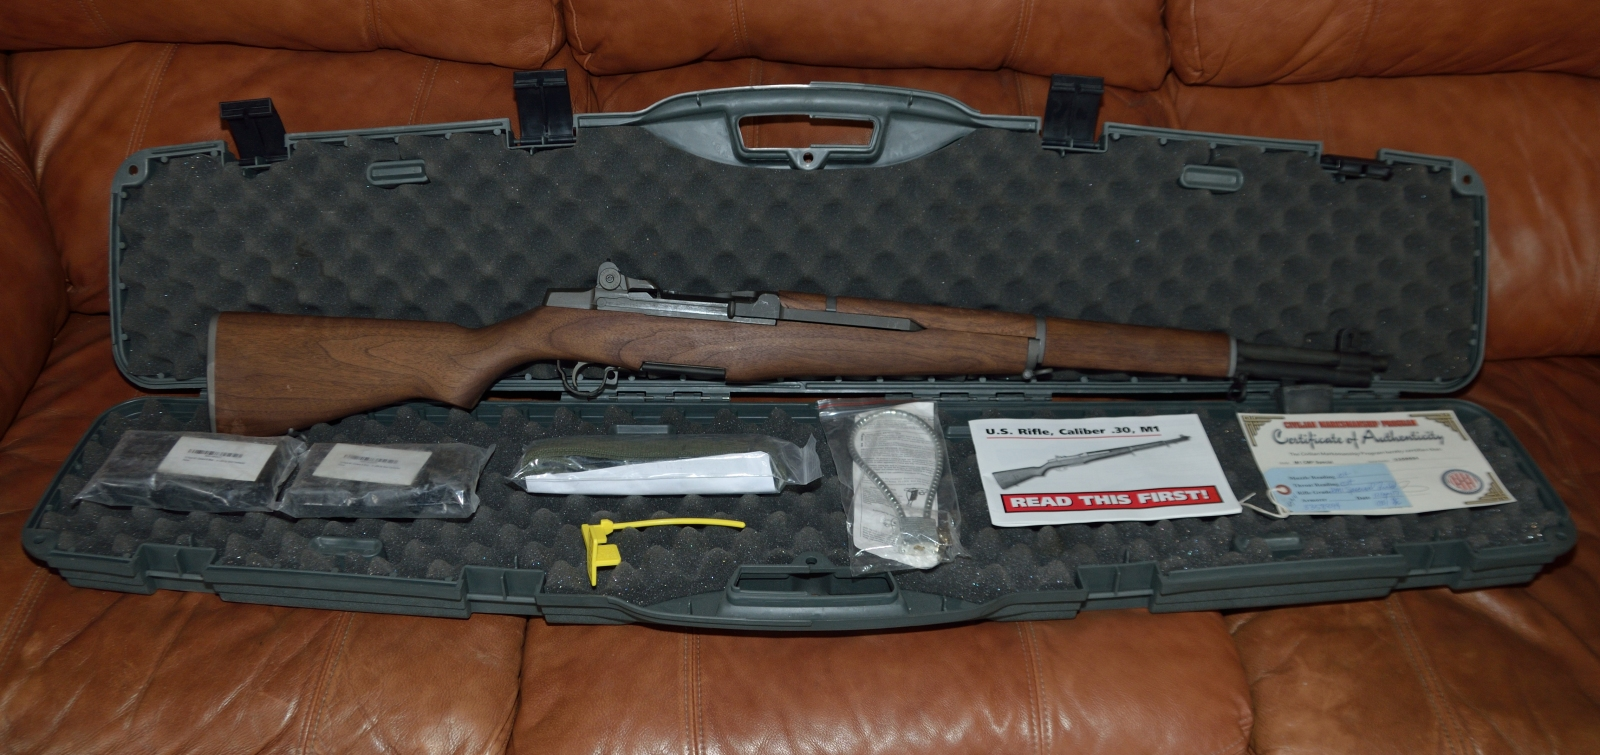 M1 Garand in CMP hardcase with paperwork and accessories